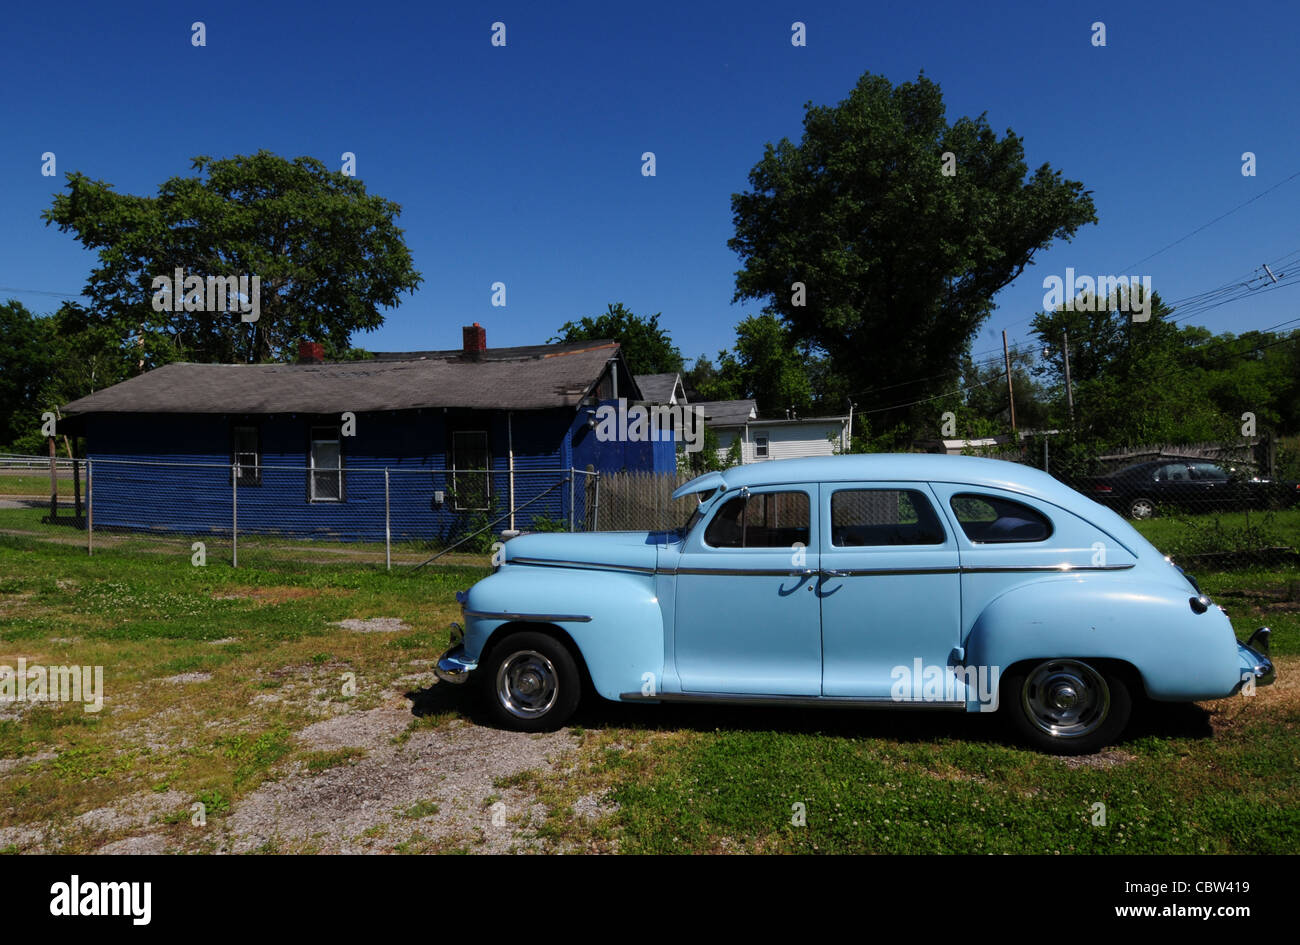 Plymouth sedan 1948 blue cabin three green light blue & Suicide Doors Stock Photos \u0026 Suicide Doors Stock Images - Alamy